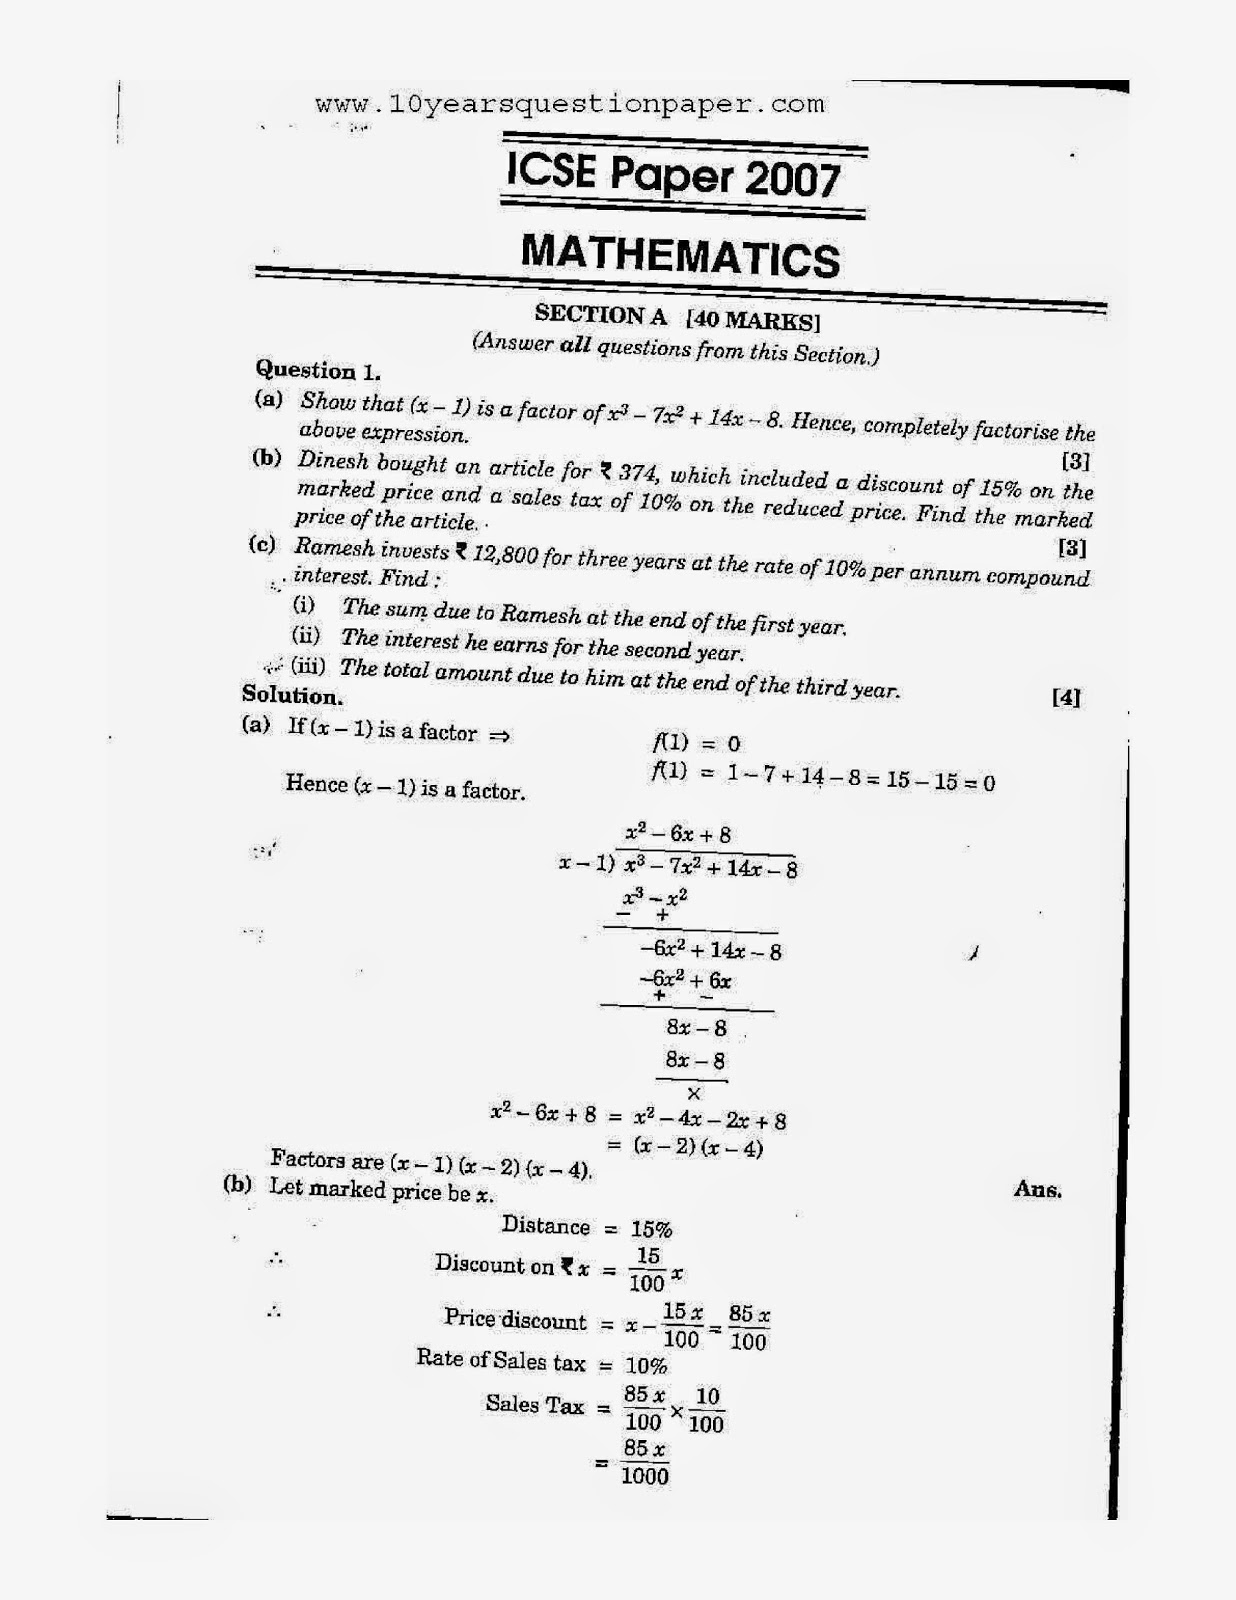 icse class 10th mathematics solved question paper 2007